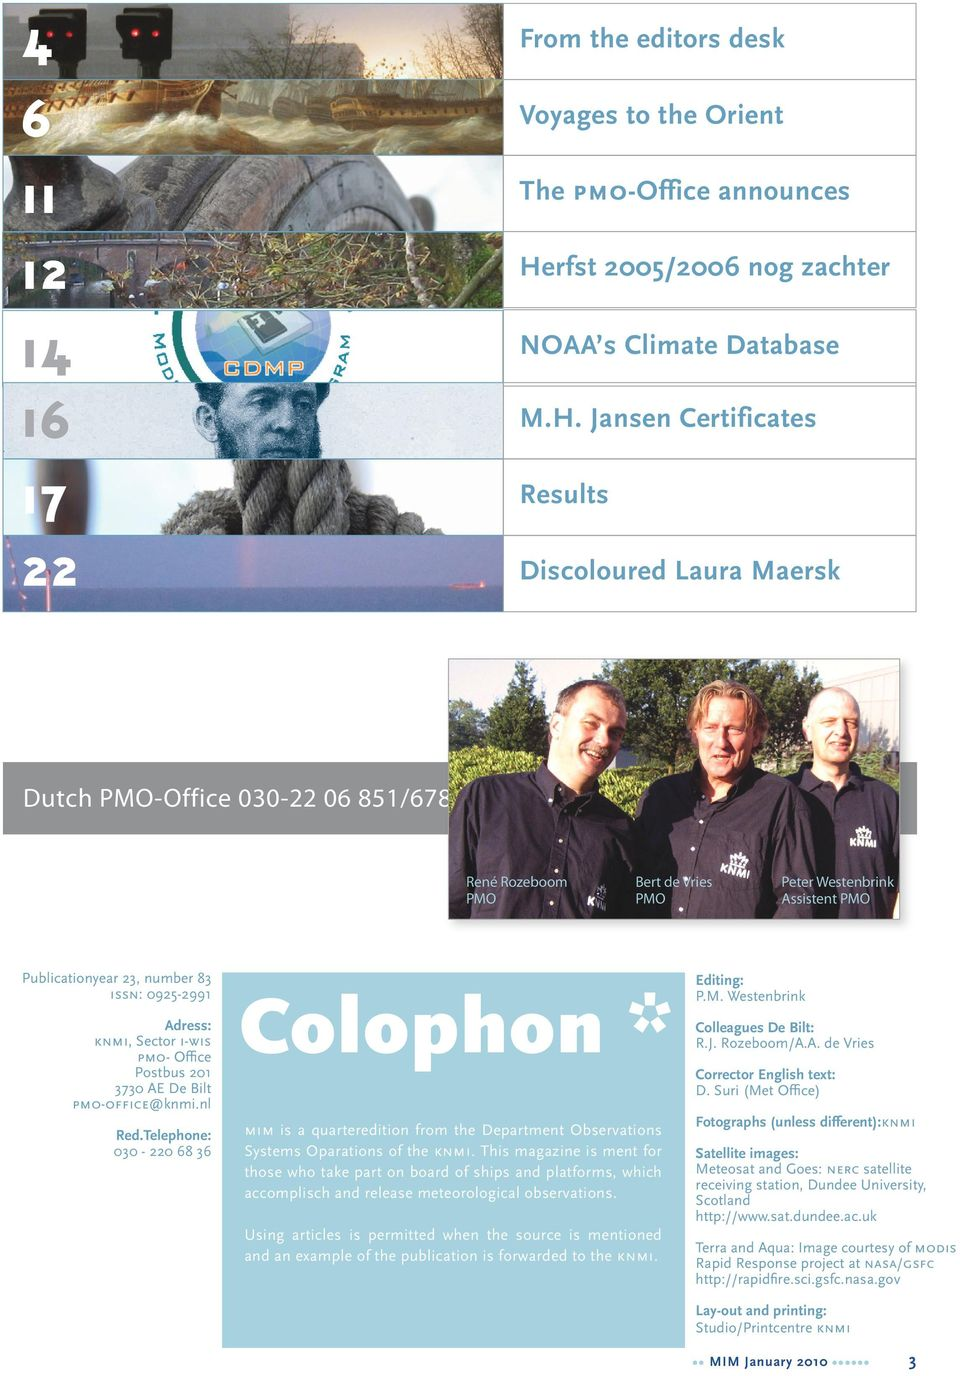 Jansen Certificates Results Discoloured Laura Maersk Dutch PMO-Office 030-22 06 851/678 René Rozeboom PMO Bert de Vries PMO Peter Westenbrink Assistent PMO Publicationyear 23, number 83 ISSN: